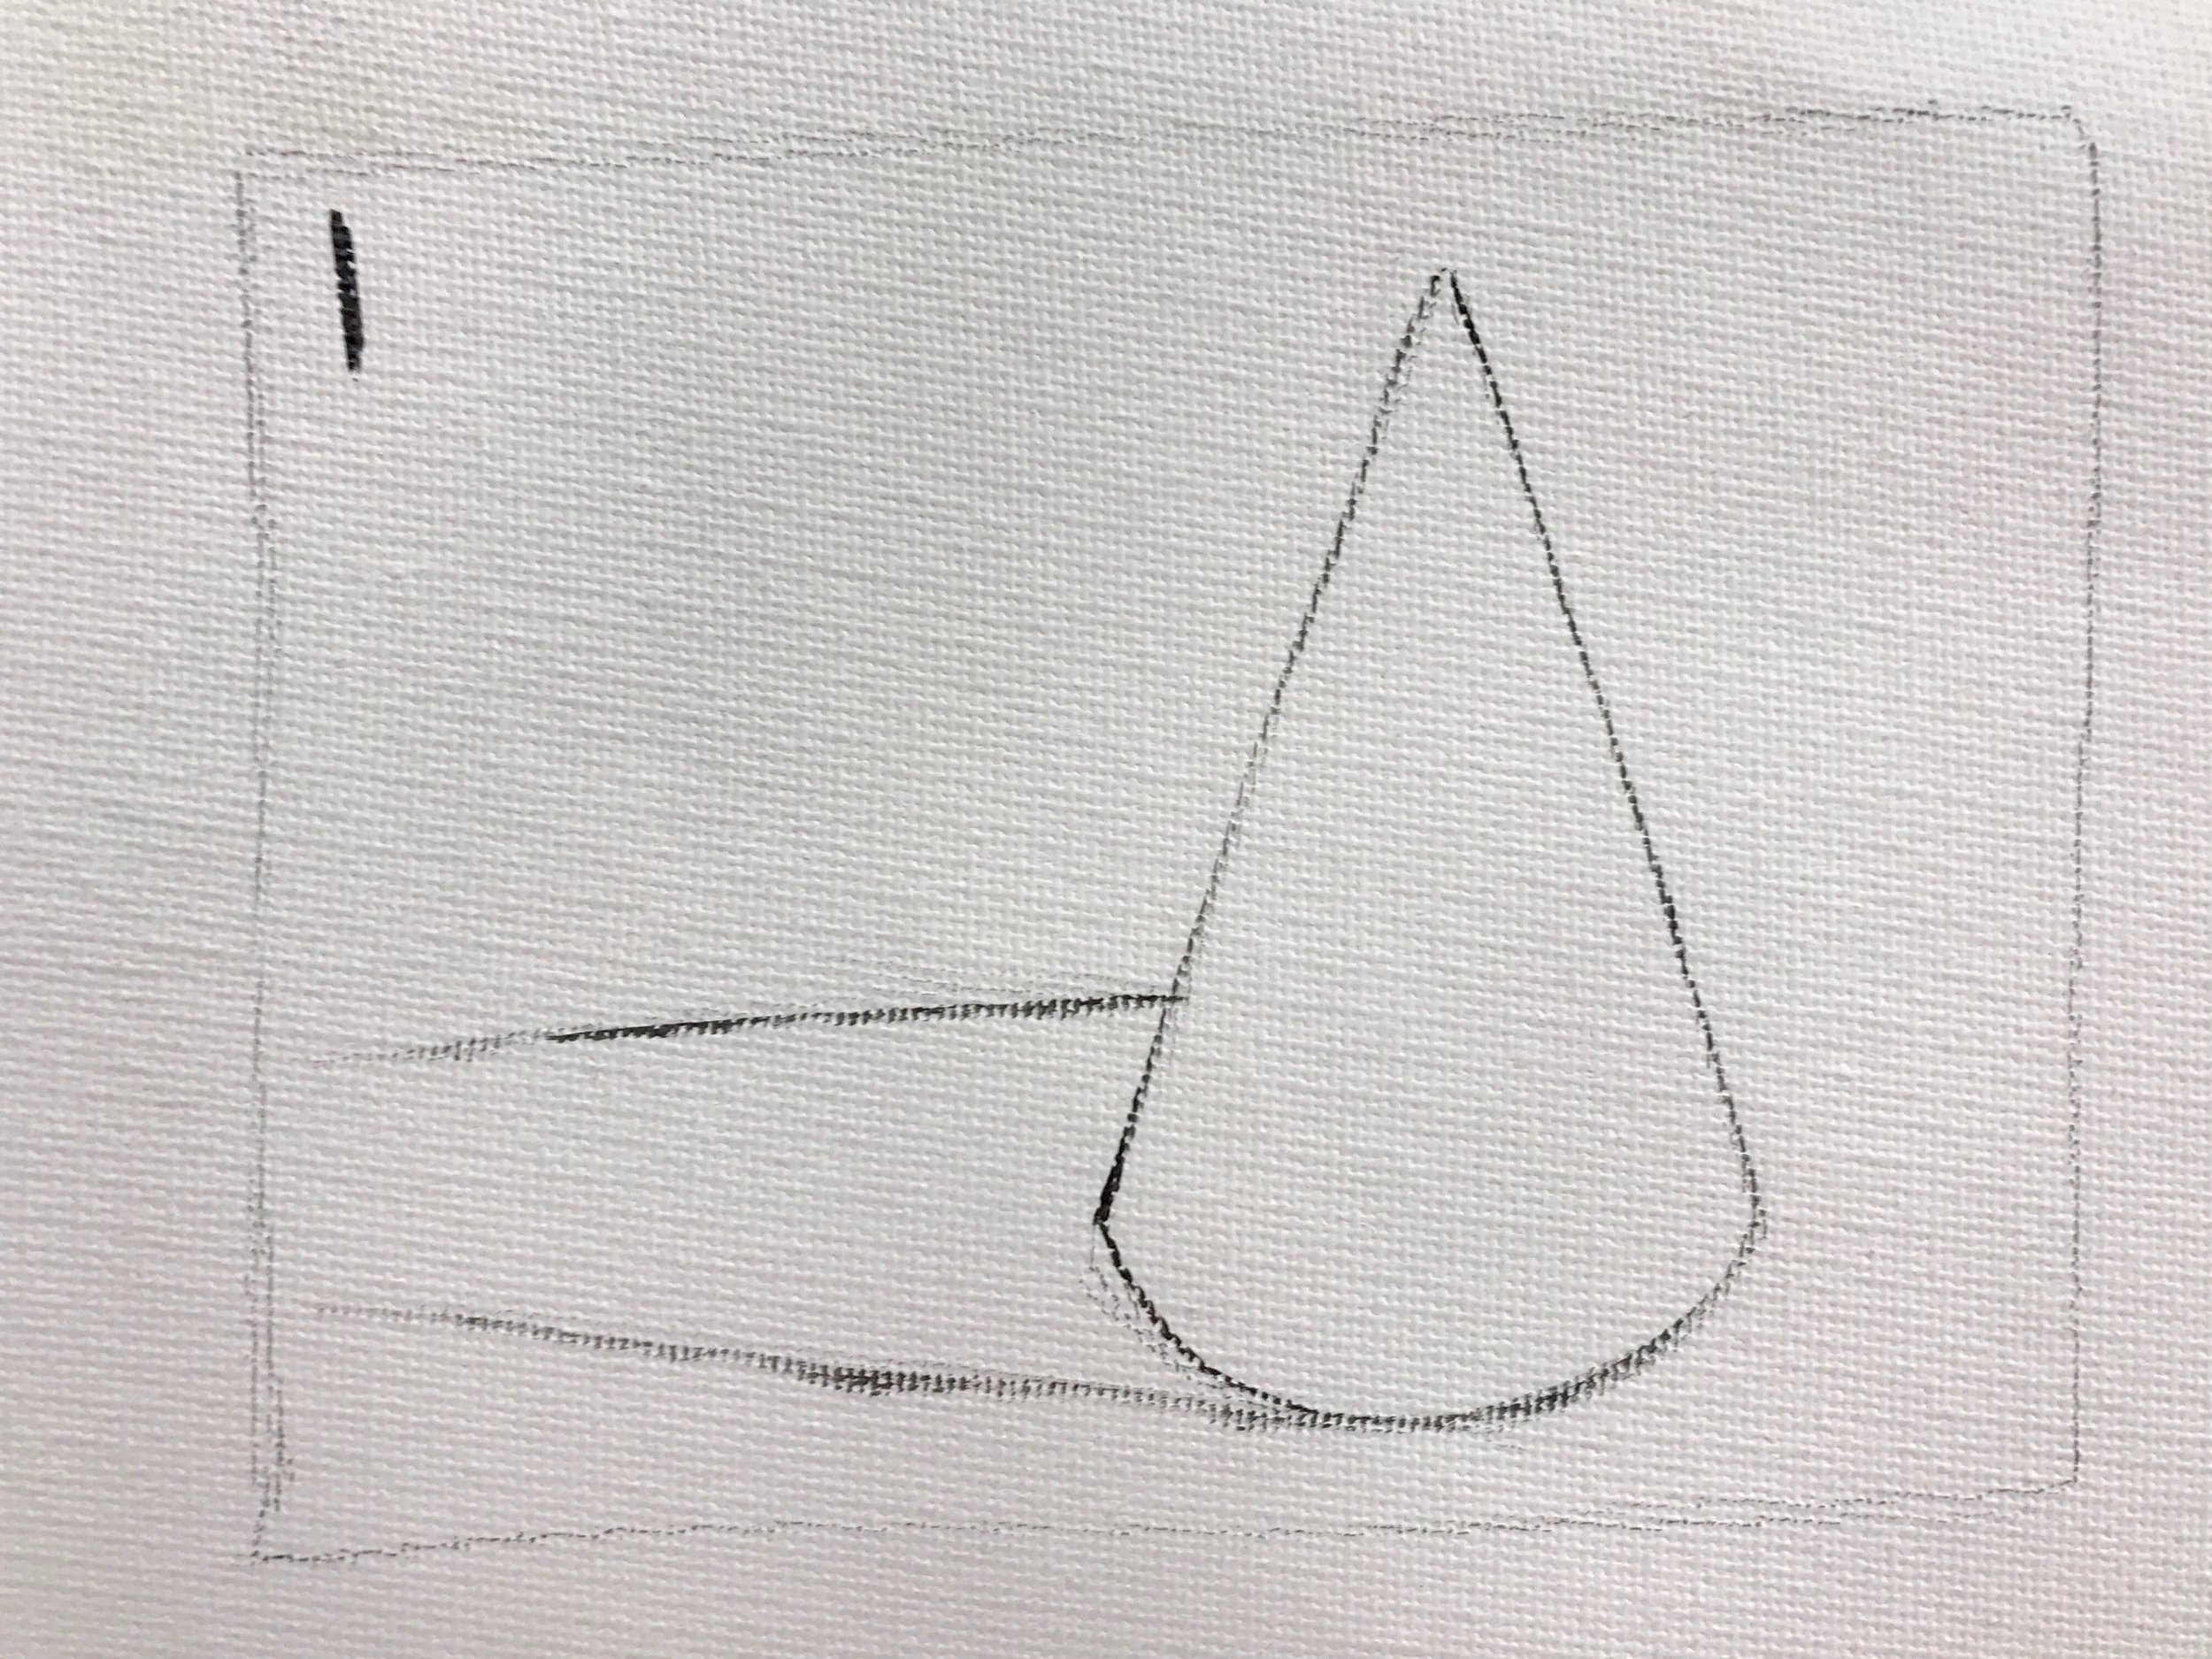 Draw out object and its cast shadow.